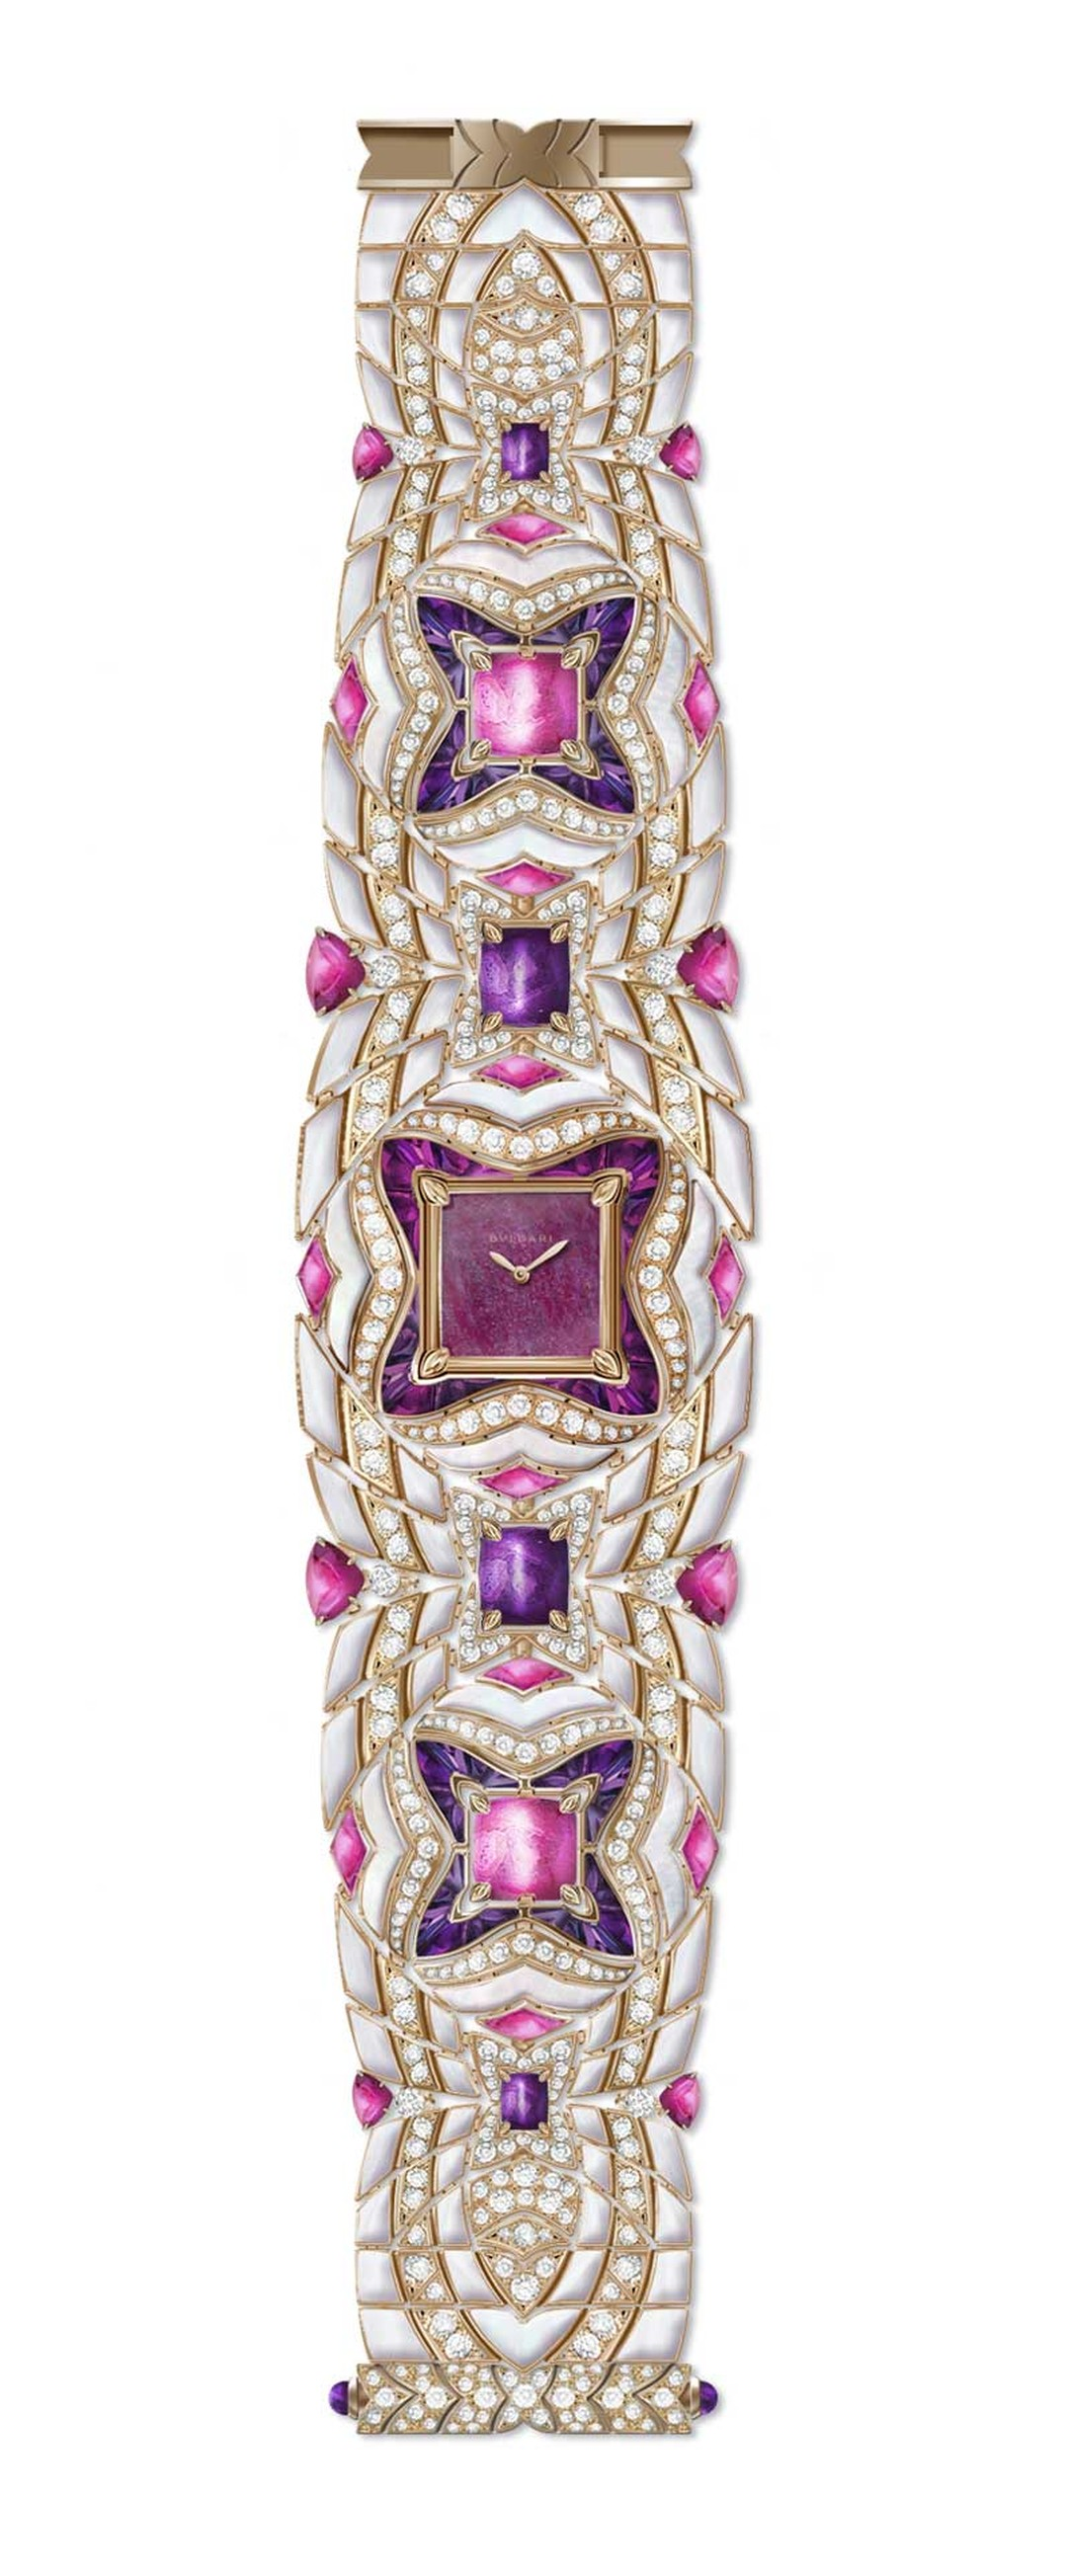 Bulgari's Mvsa high jewellery watch in rose gold features a ruby heart dial and a fabulous bracelet set with mother-of-pearl, 350 brilliant-cut diamonds, 56 buff-top amethysts, 4 Takhti-cut amethysts, 20 triangle-cut rubellites and 2 Takhti rubellites.